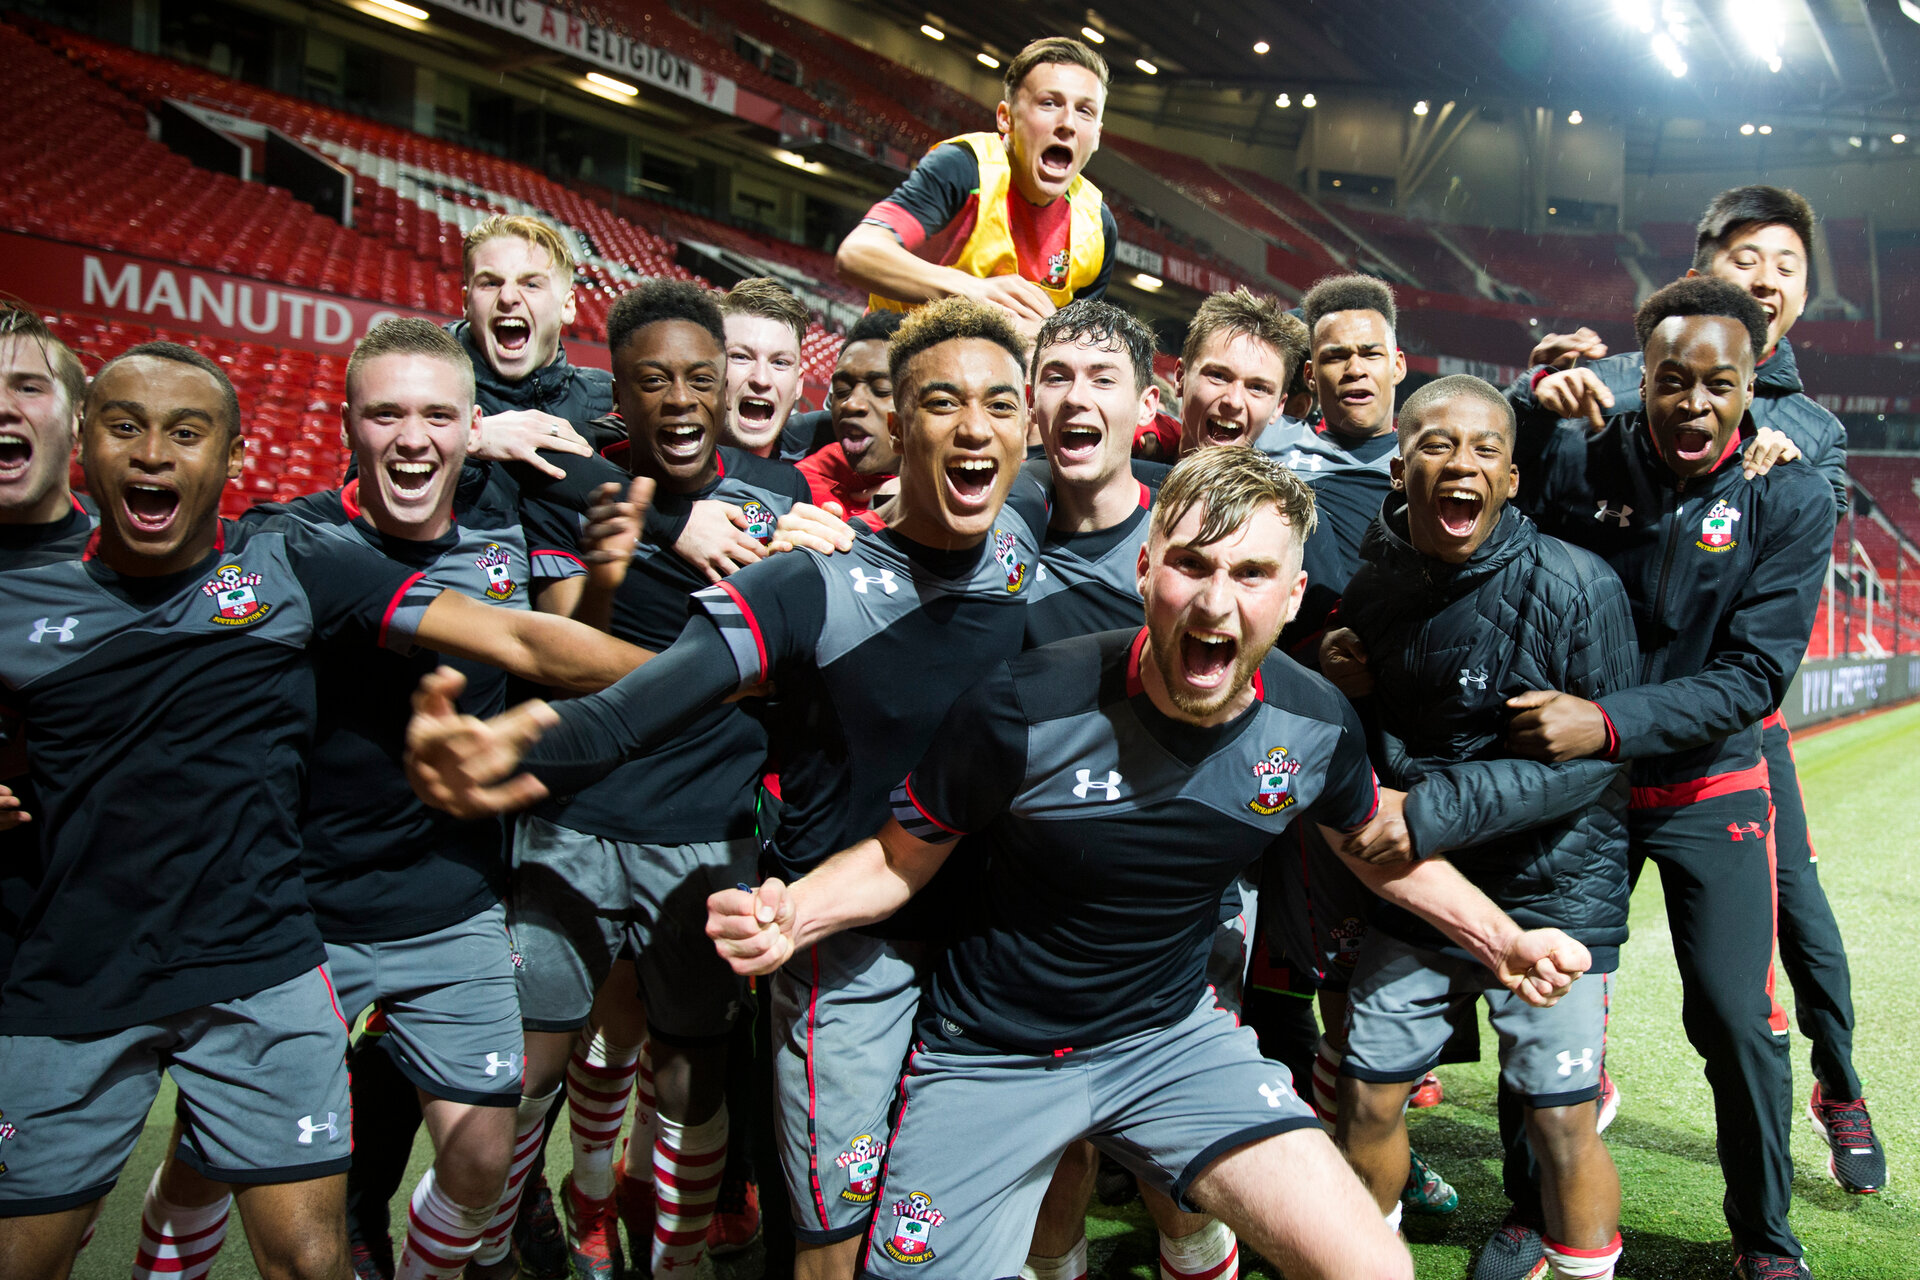 team celebrate during Southampton FC U18 v Manchester United U18 in the FA youth cup, at Old Trafford, Manchester, 12th December 2016, pic by Naomi Baker/Southampton FC